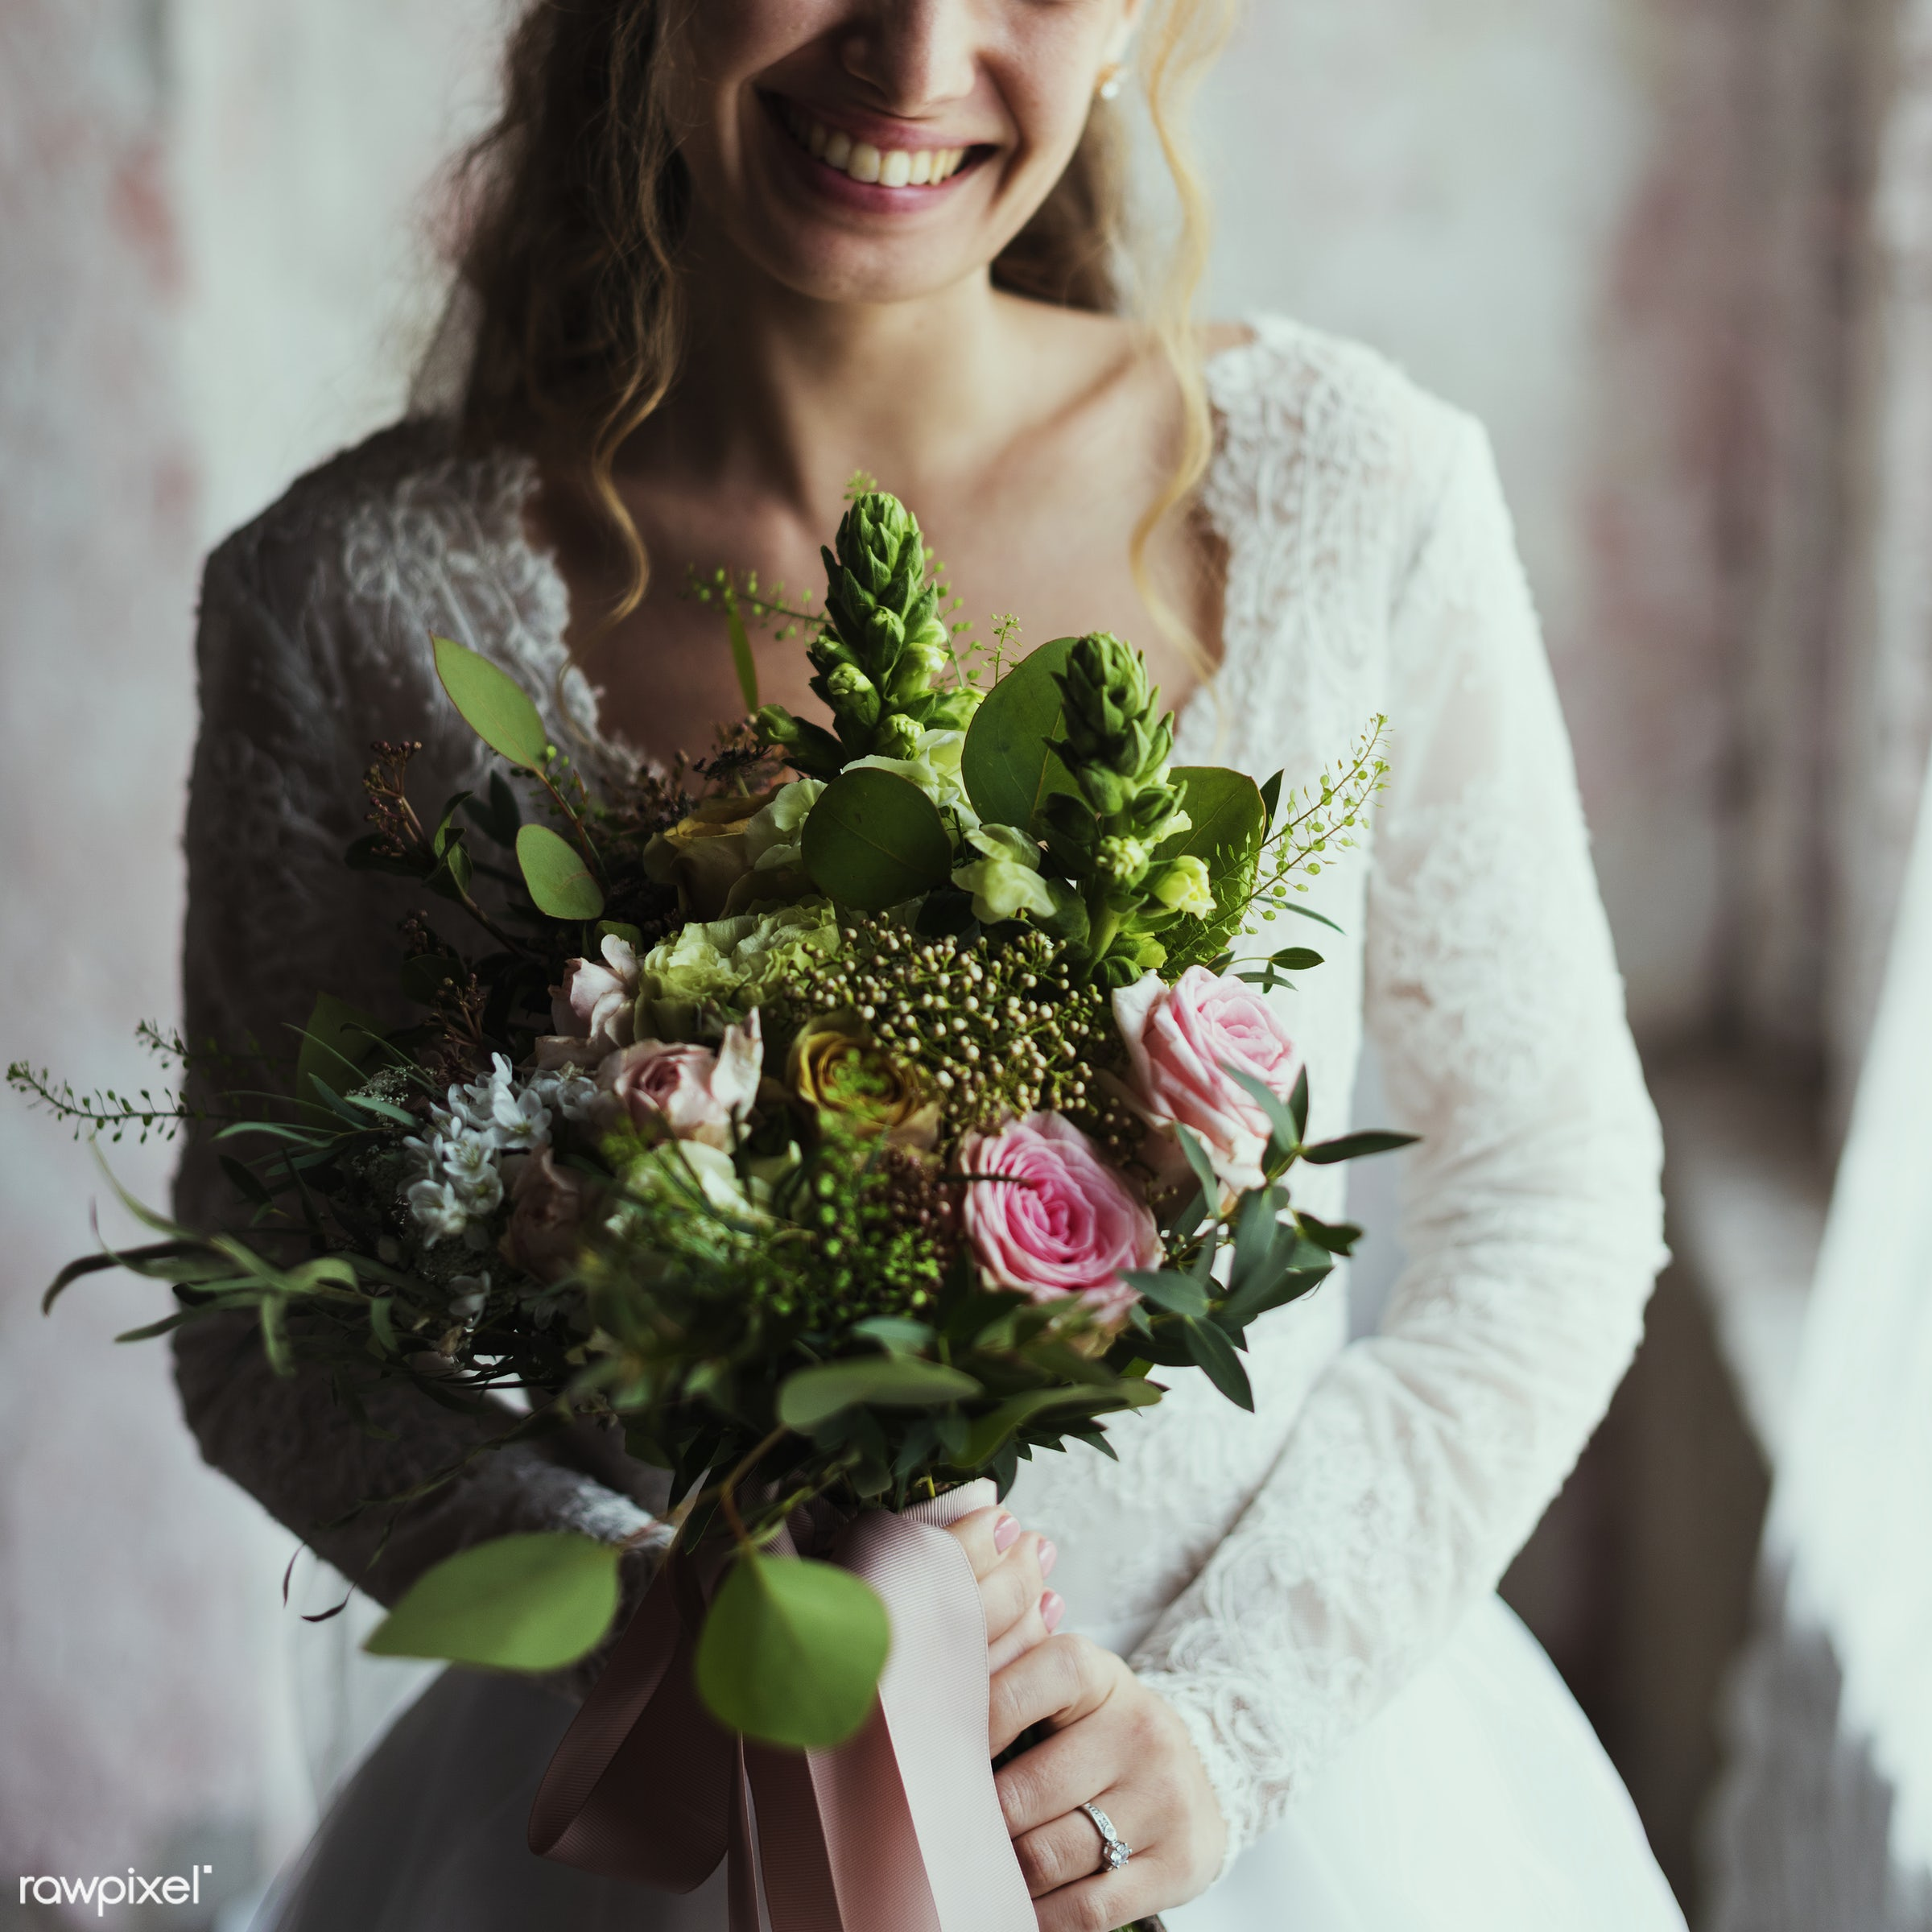 Attractive Beautiful Bride Holding Flowers Bouquet - wedding, bouquet, bridal, adult, attractive, beautiful, bride,...